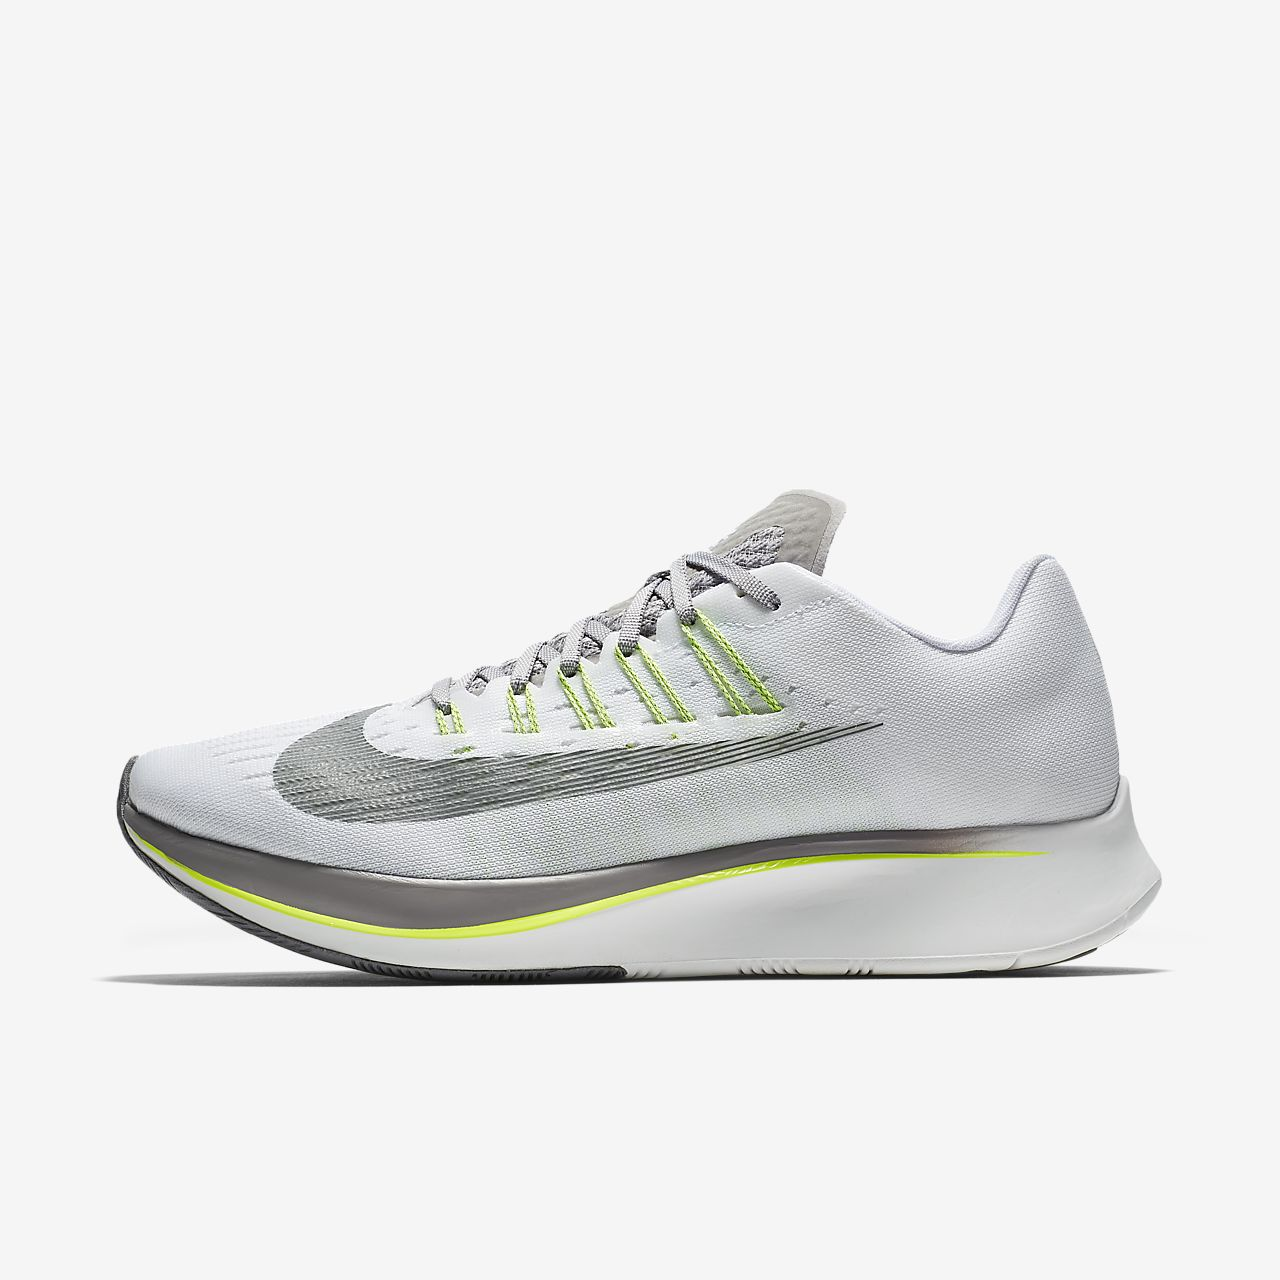 info for 055c7 63f6e Men s Running Shoe. Nike Zoom Fly